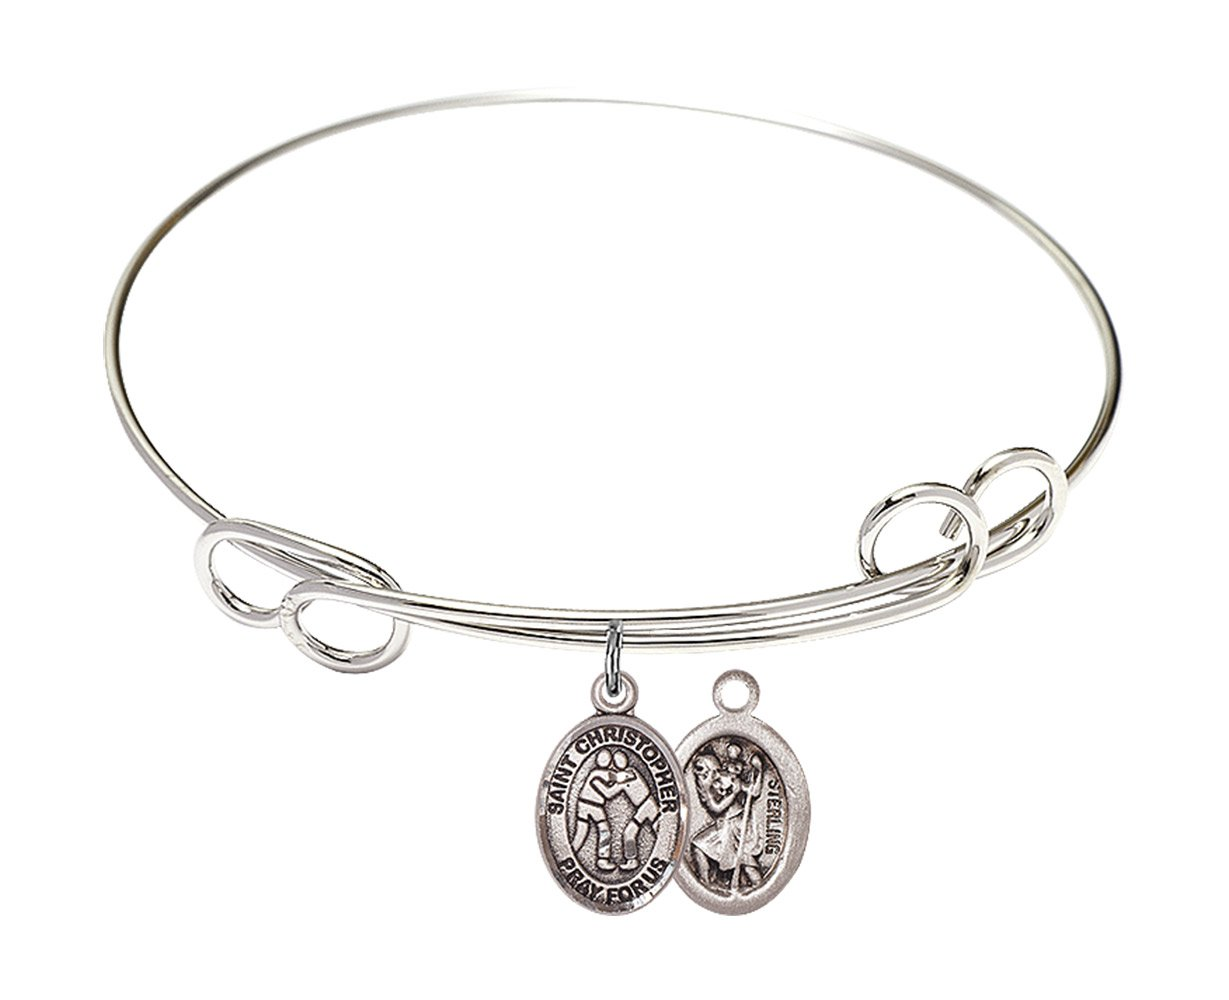 St. Christopher Wrestling Charm On A 7 1/2 Inch Round Double Loop Bangle Bracelet by Catholic Saint Medals